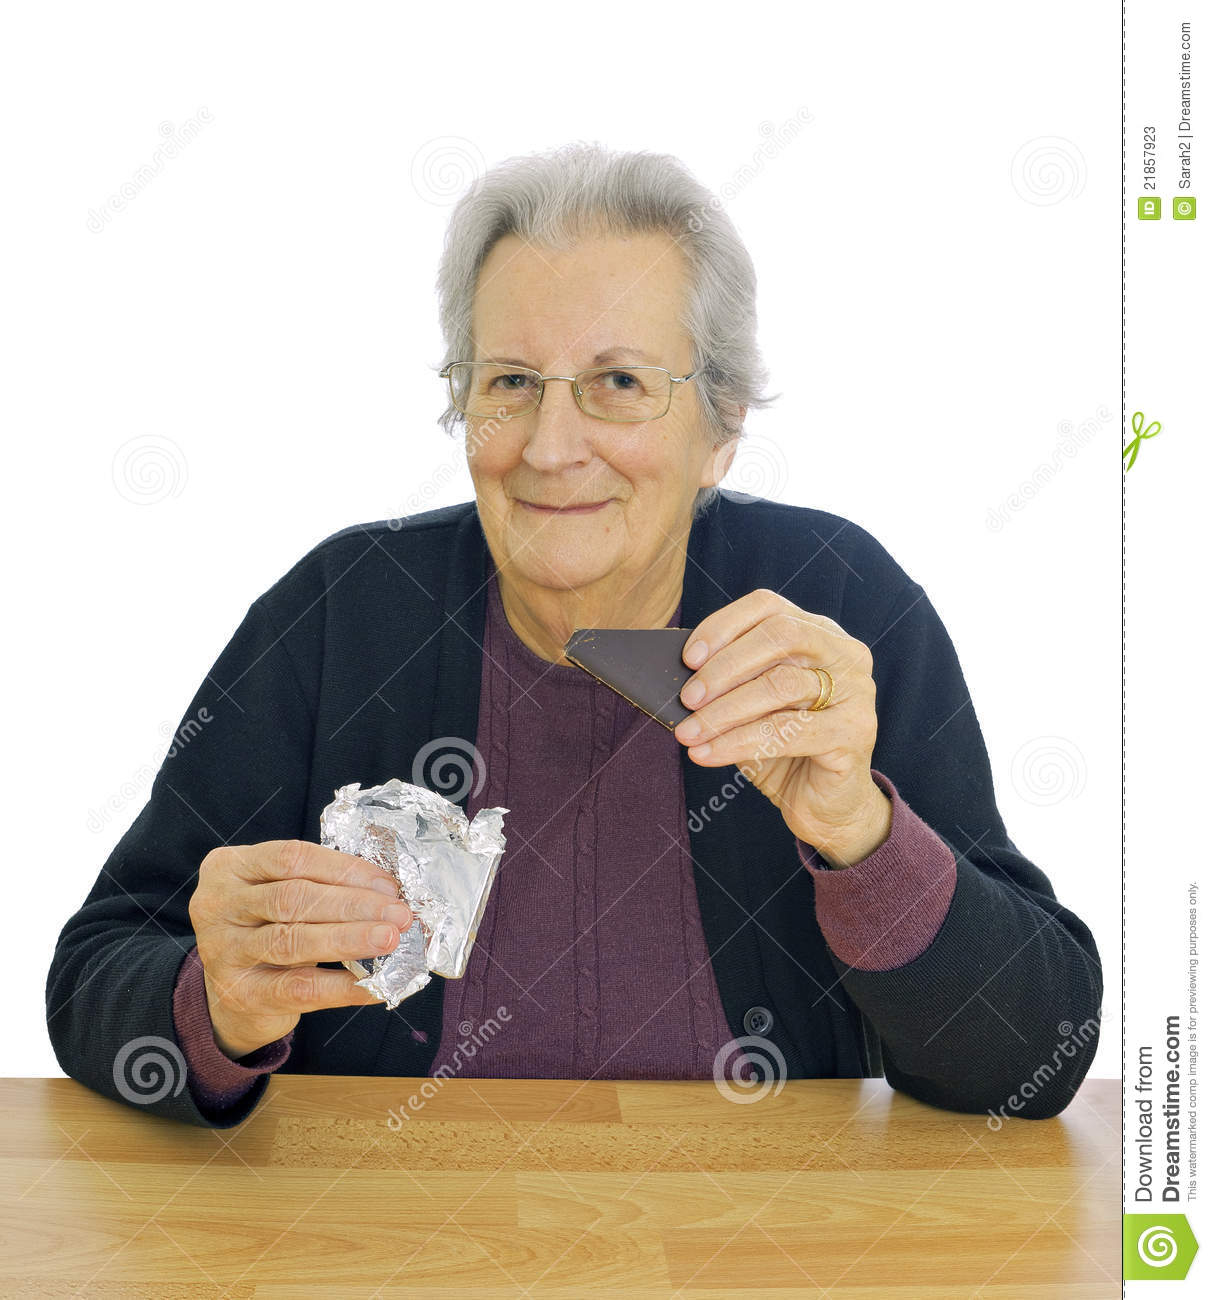 Happy Elderly Lady Enjoys Eating Chocolate Stock Photos